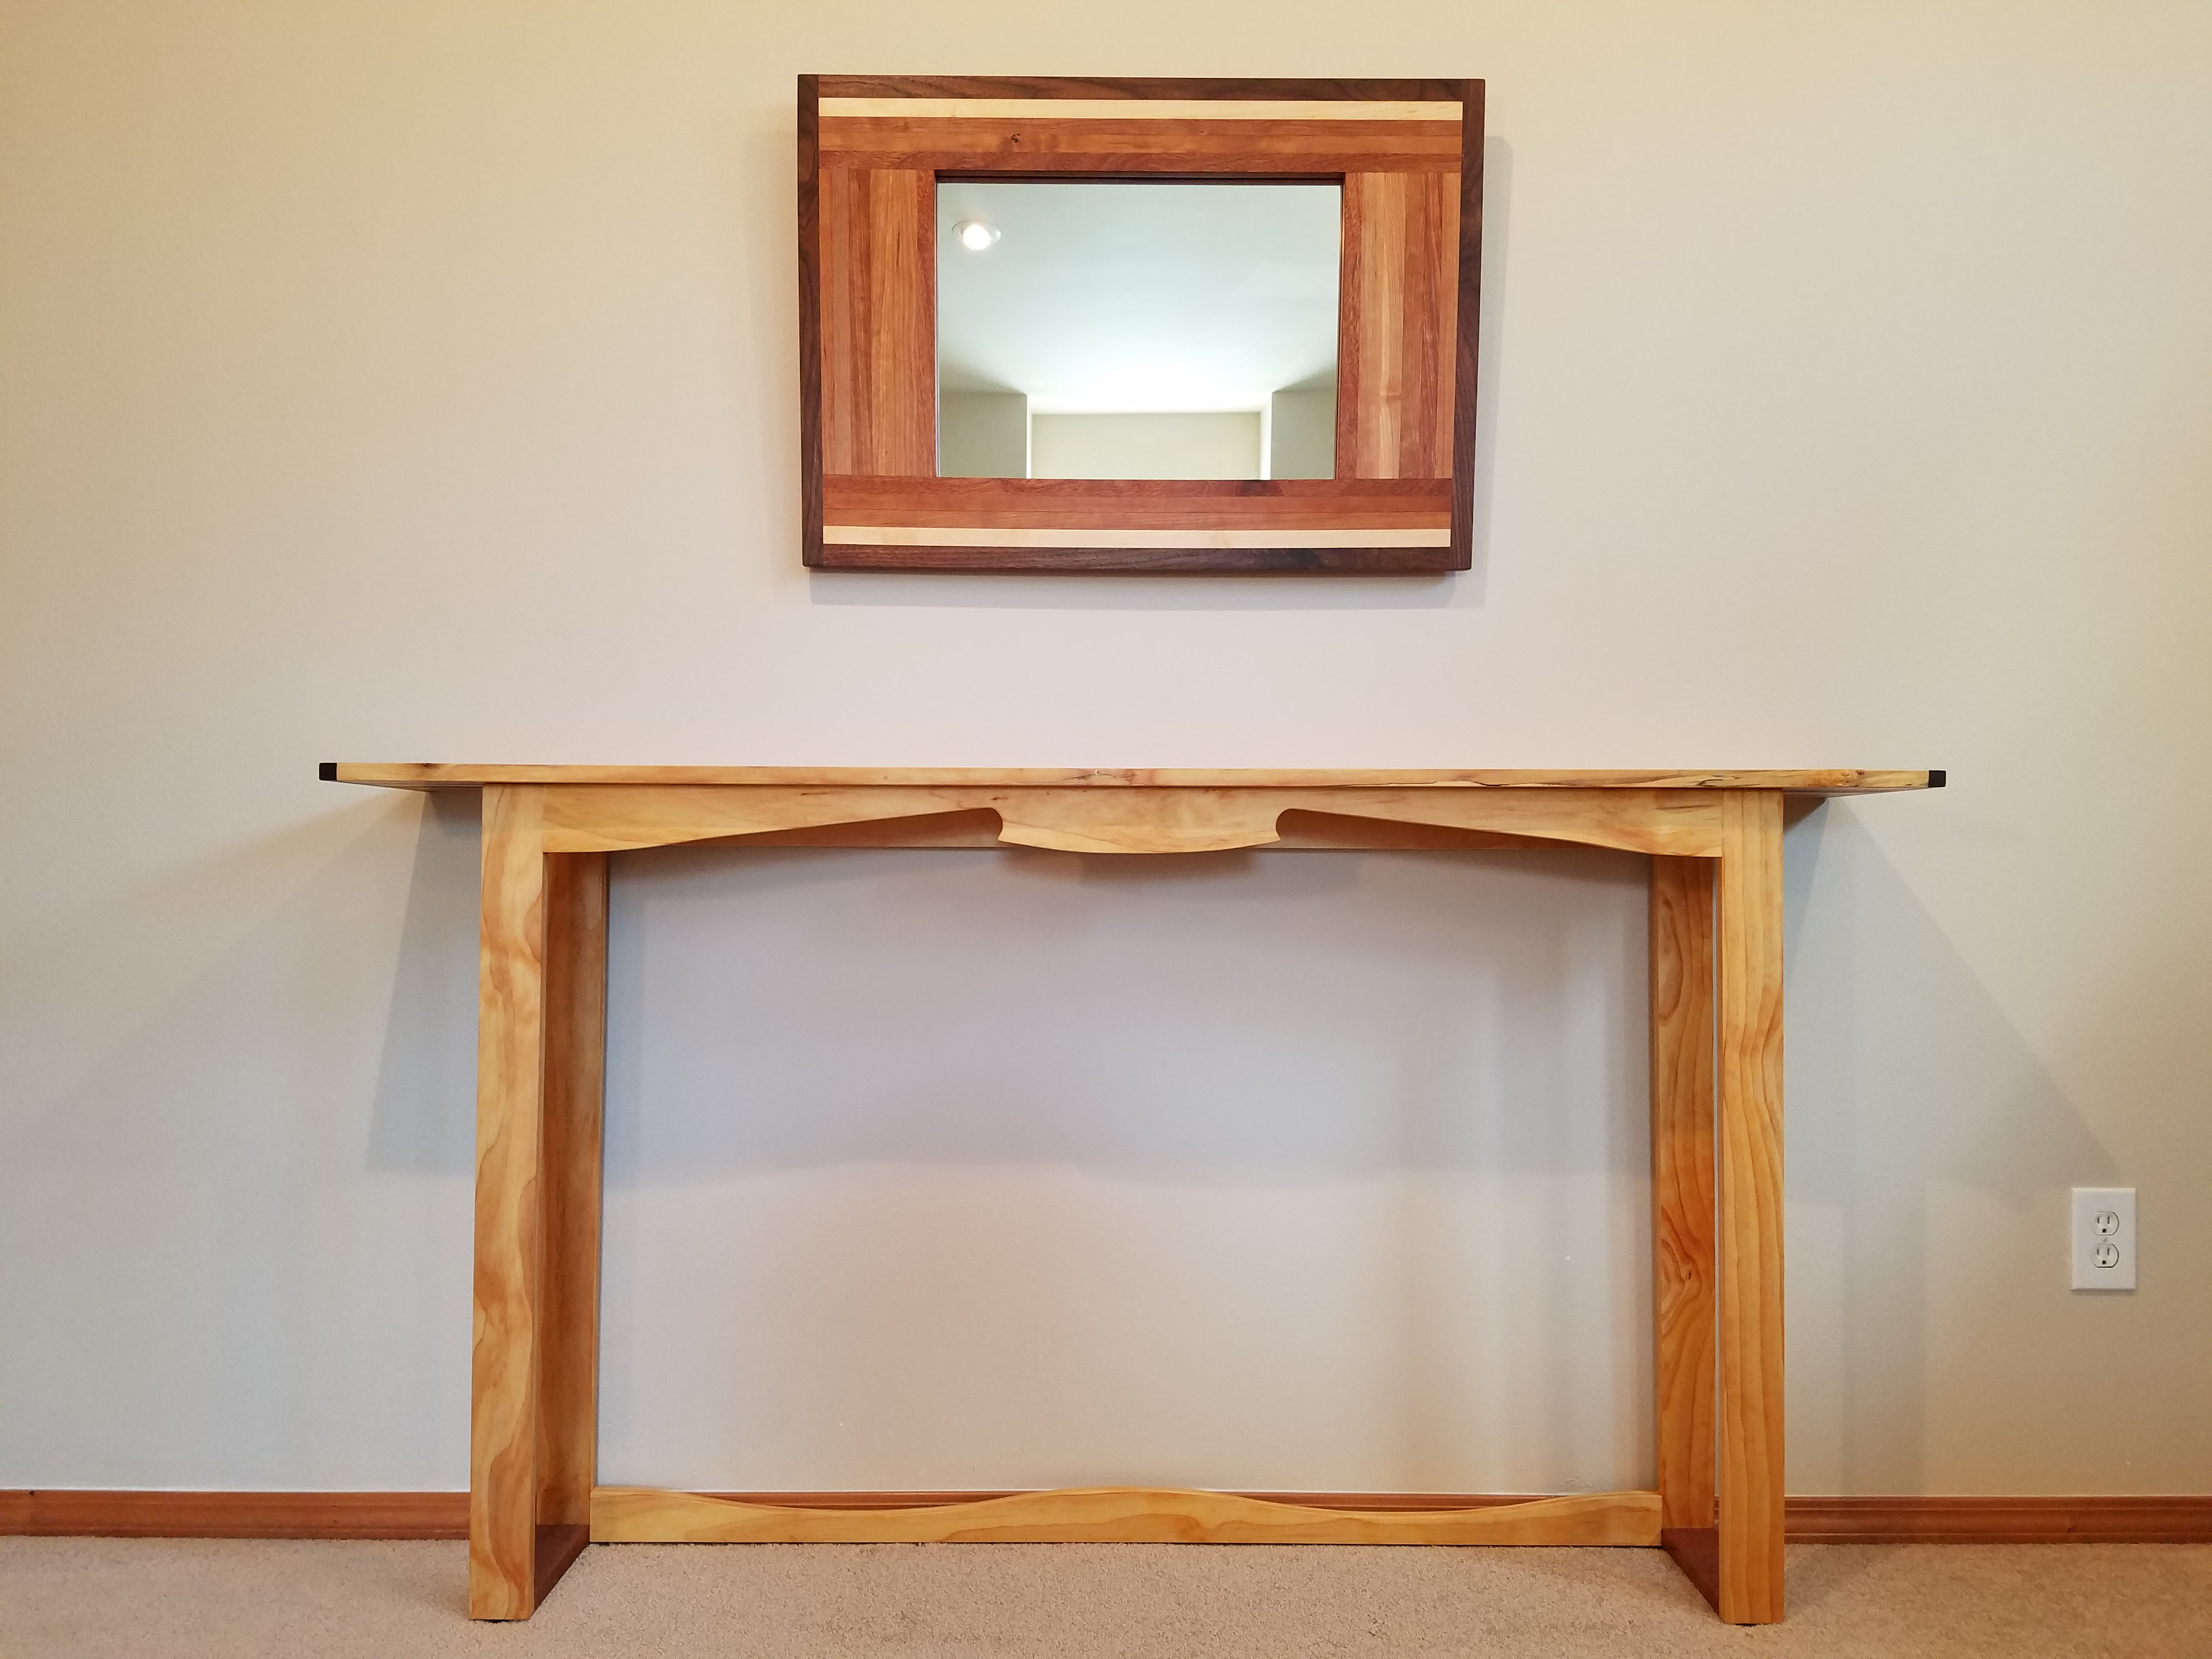 Wood Console Table With A Live Edge And Mirror — Handmade Natural Within Natural Wood Mirrored Media Console Tables (View 20 of 20)